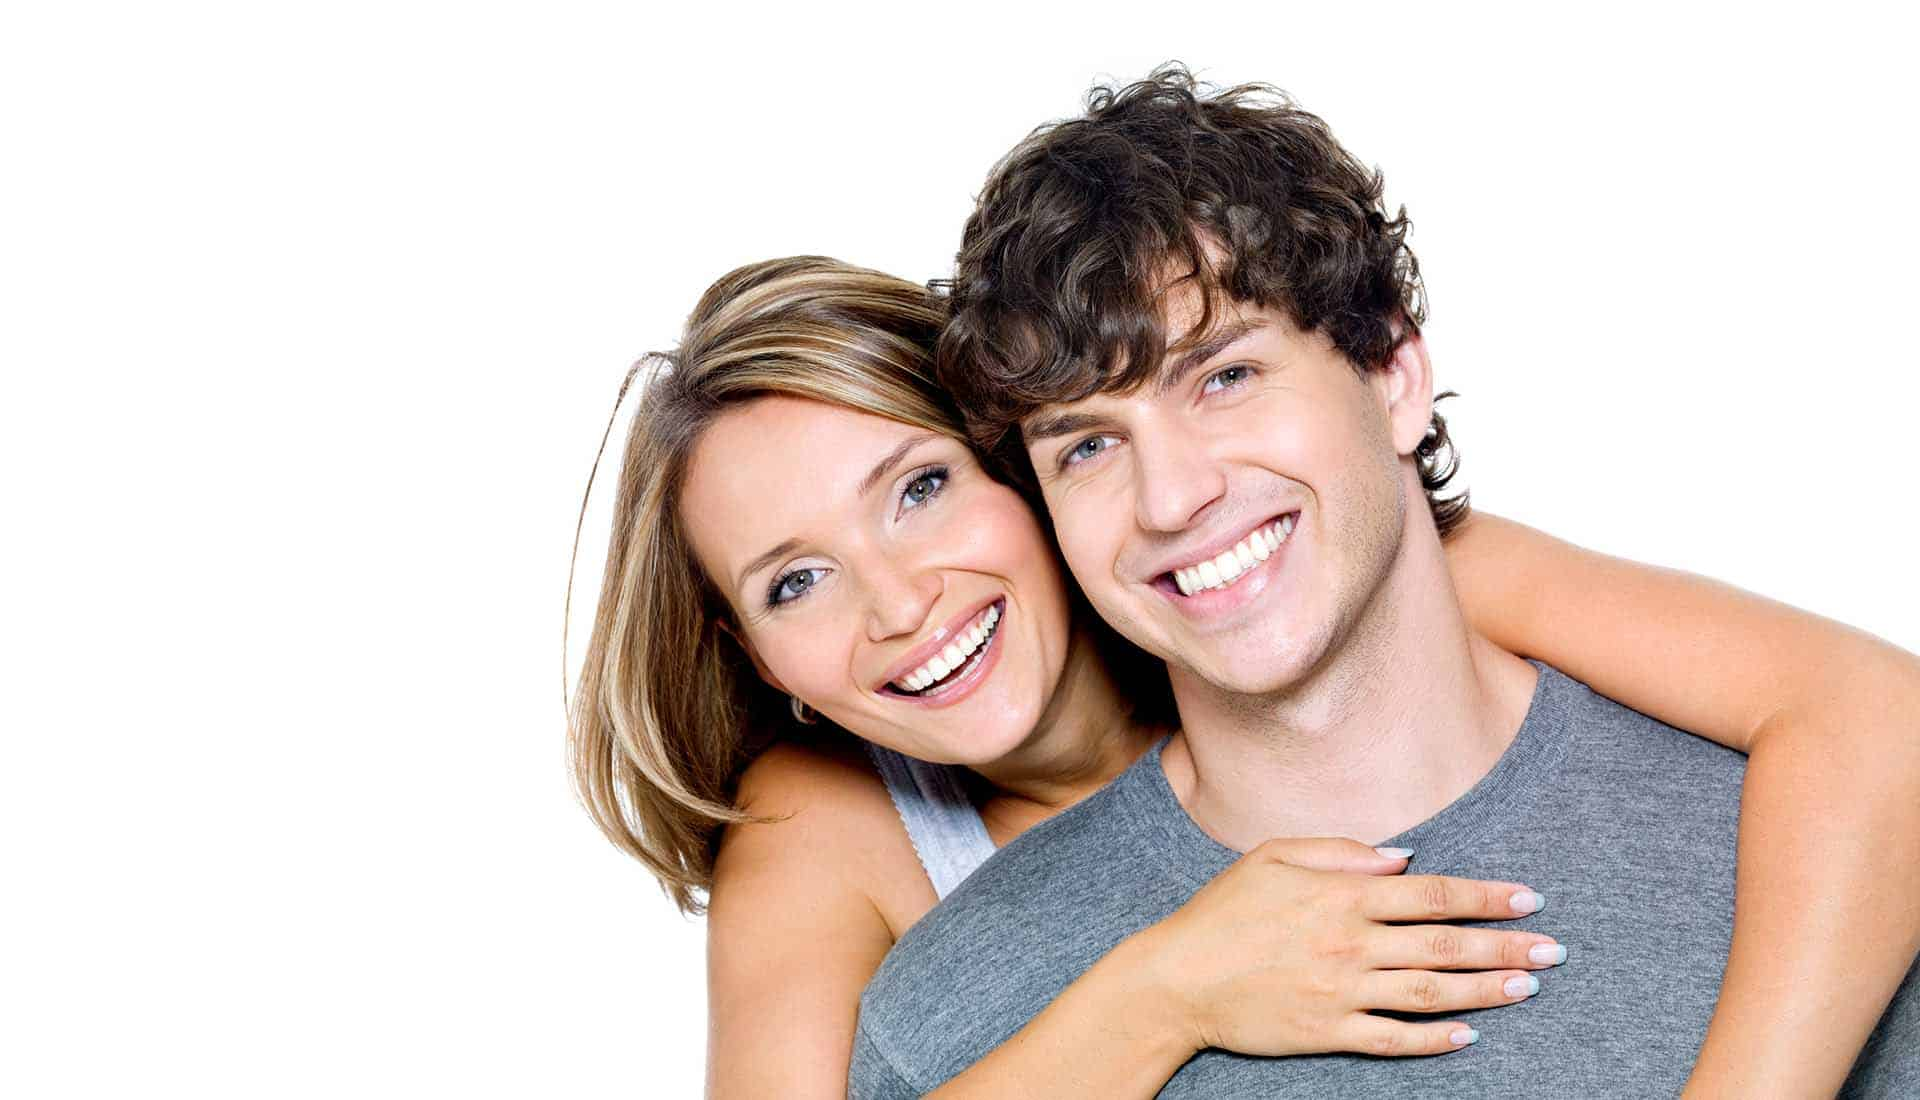 Portrait of a beautiful young happy smiling couple on a white background.